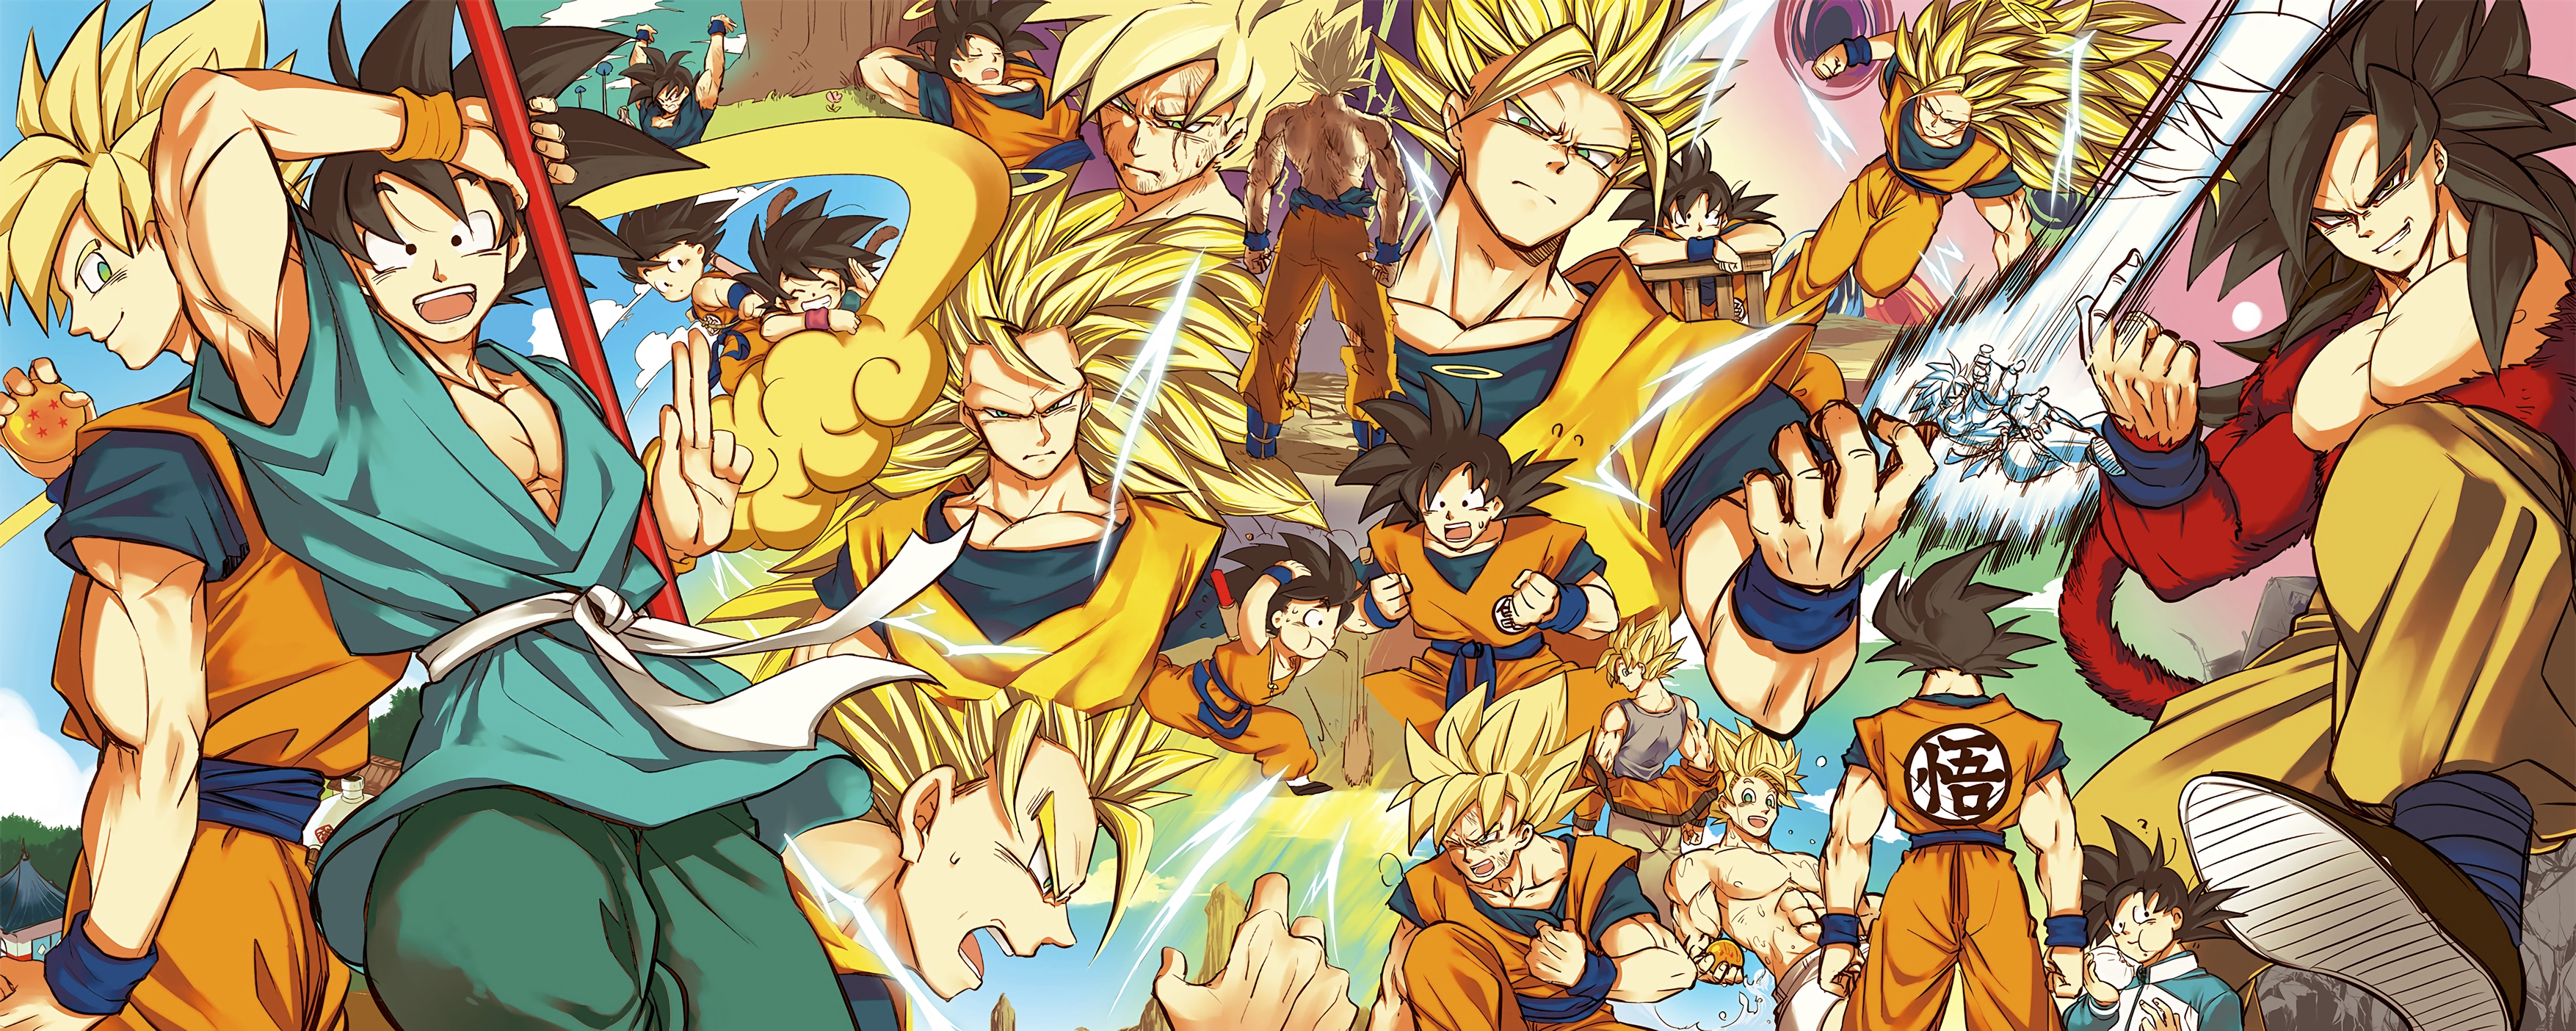 Dbz Dual Screen Wallpapers: 10 Best Dbz Dual Monitor Wallpaper FULL HD 1920×1080 For